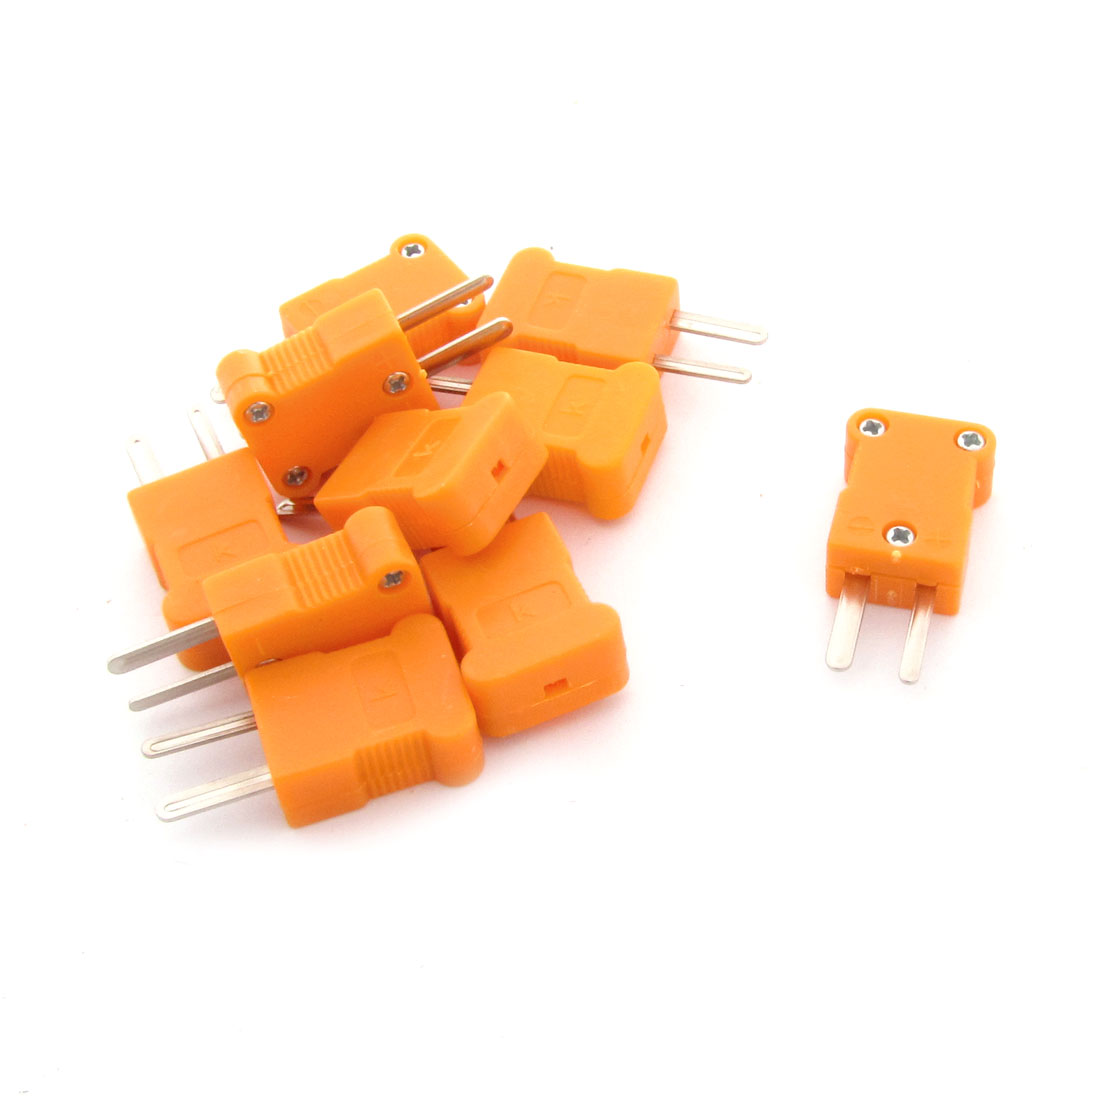 10 Pcs RTD Circuits Male K Type Thermocouple Plugs 35mm Long Orange